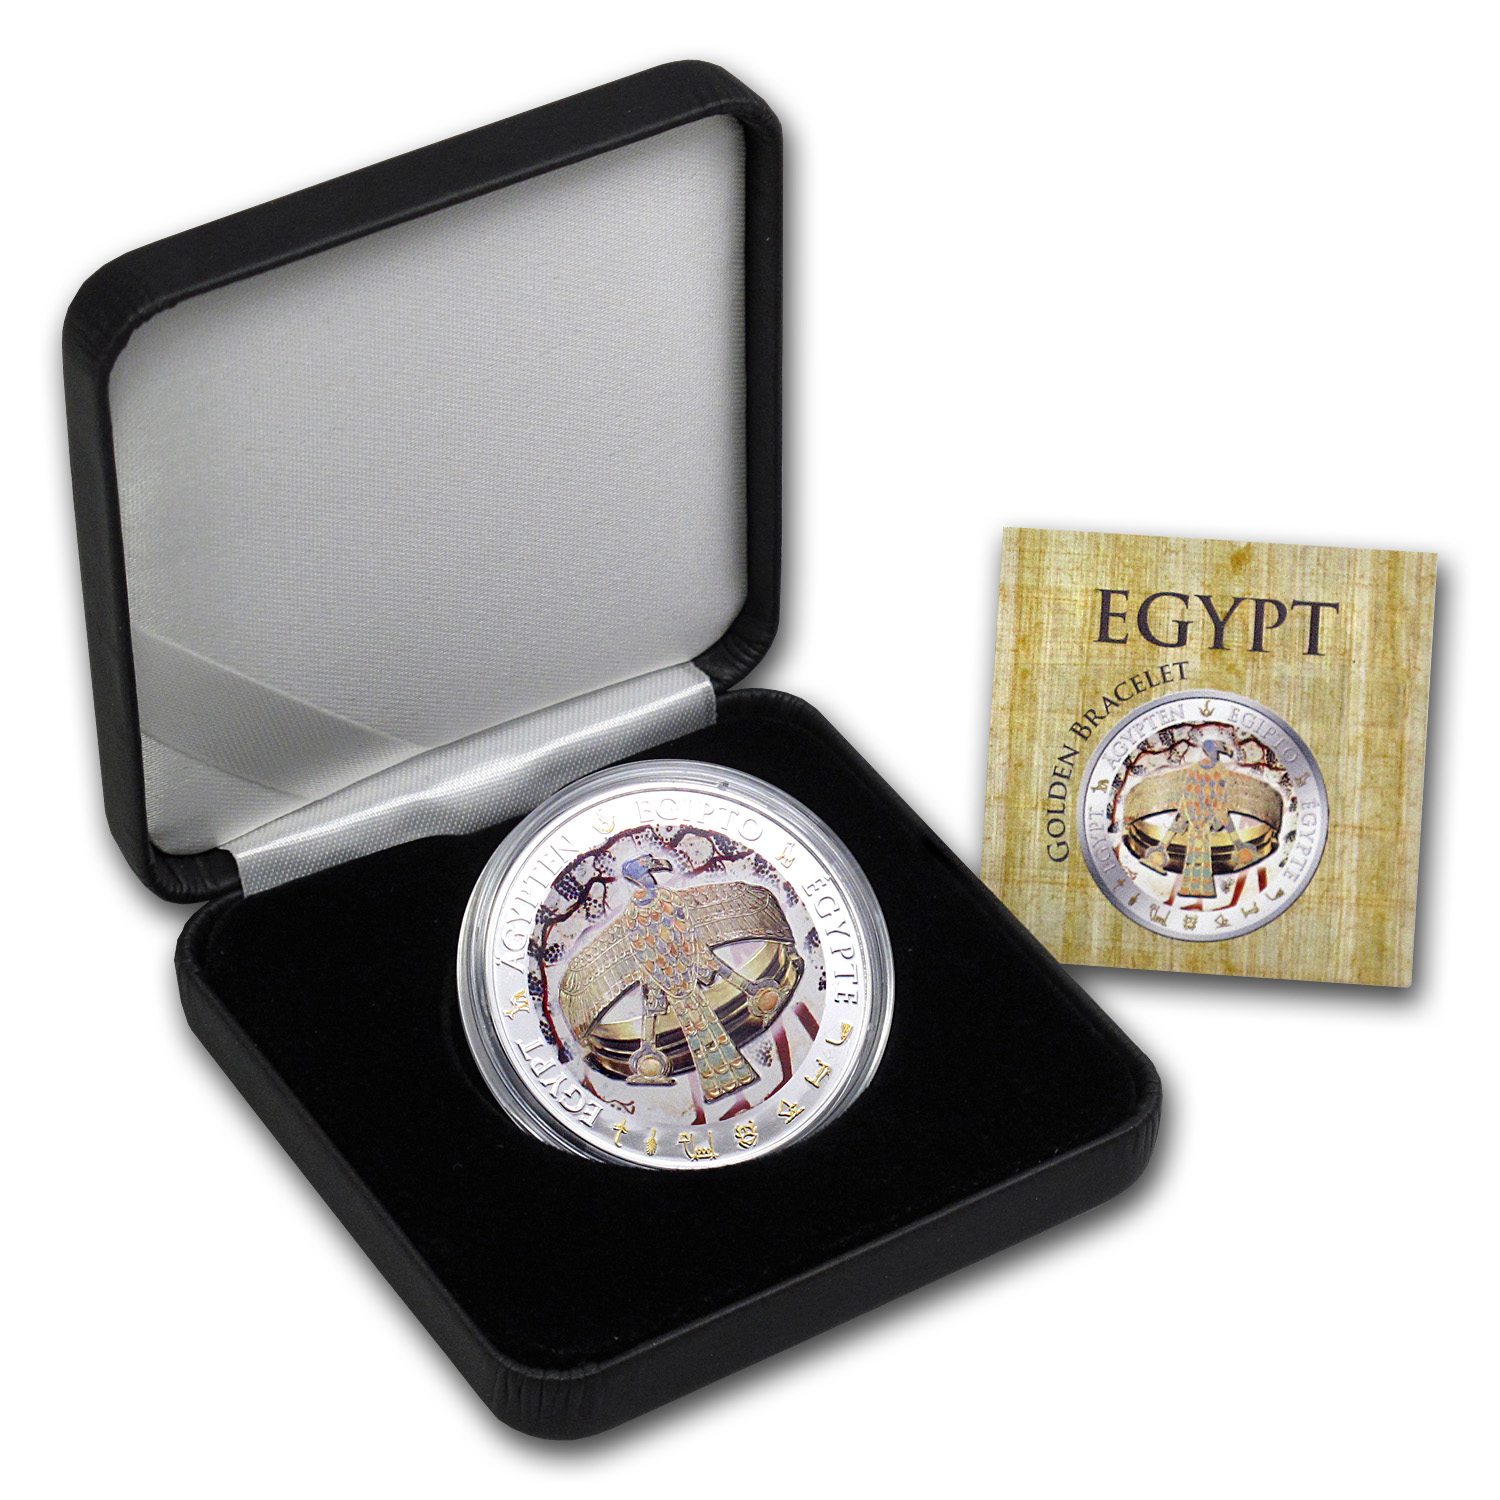 2012 Fiji Proof Silver Egypt Golden Bracelet of Queen Ahhotep